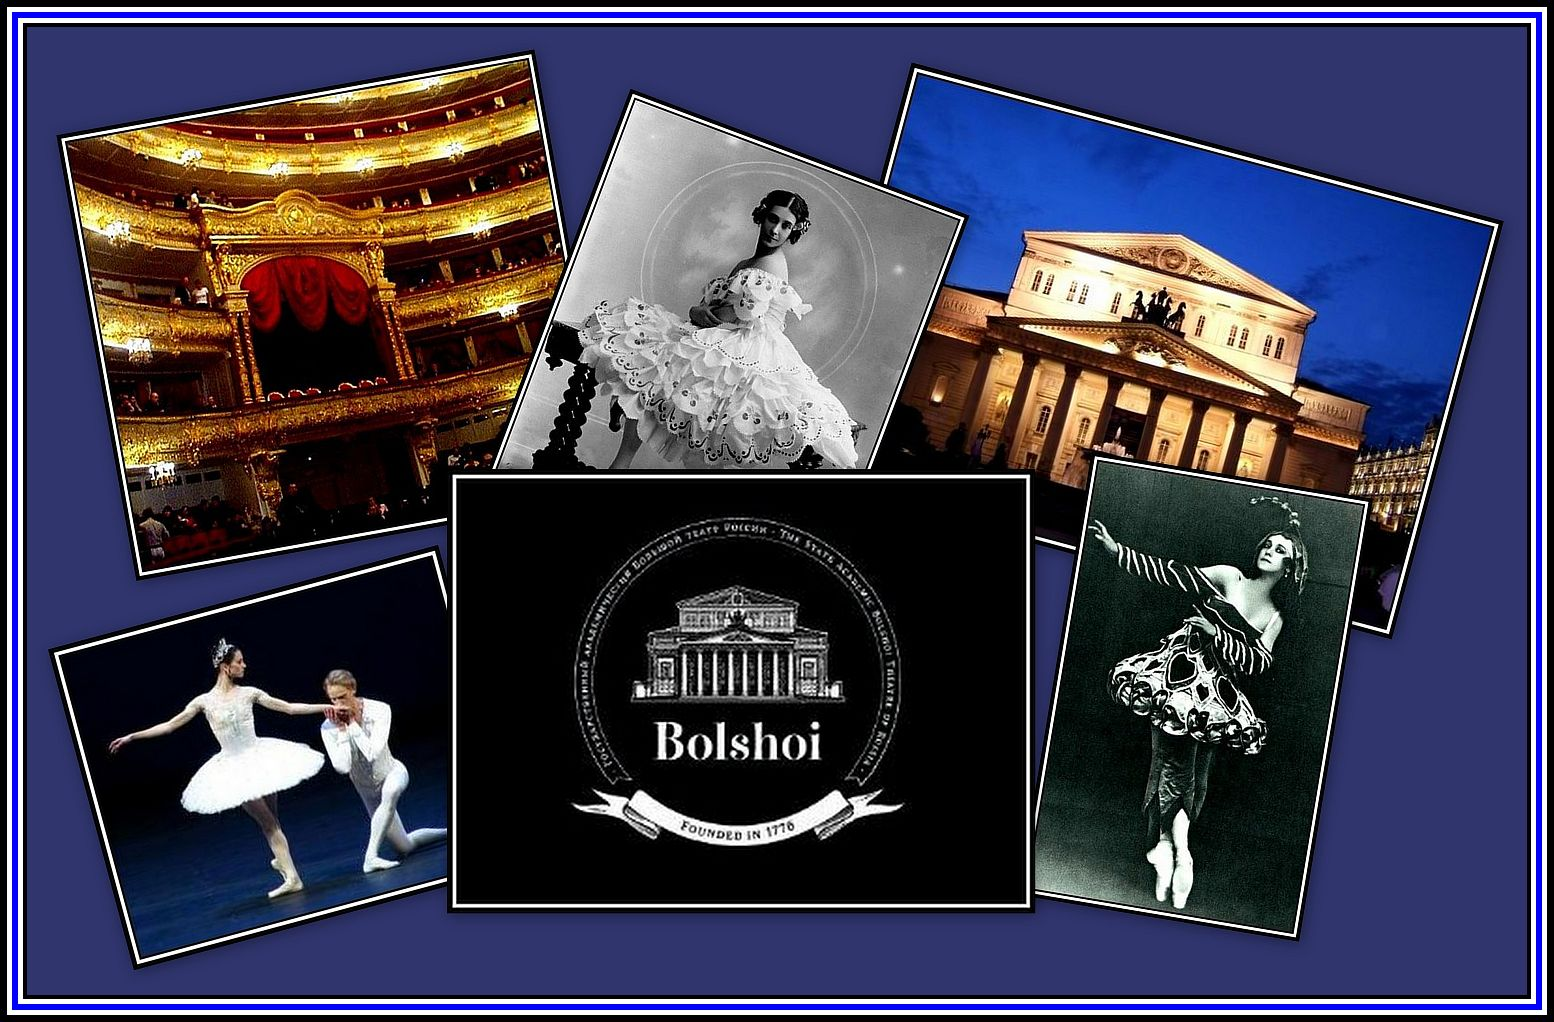 The Bolshoi Over the Years Collage